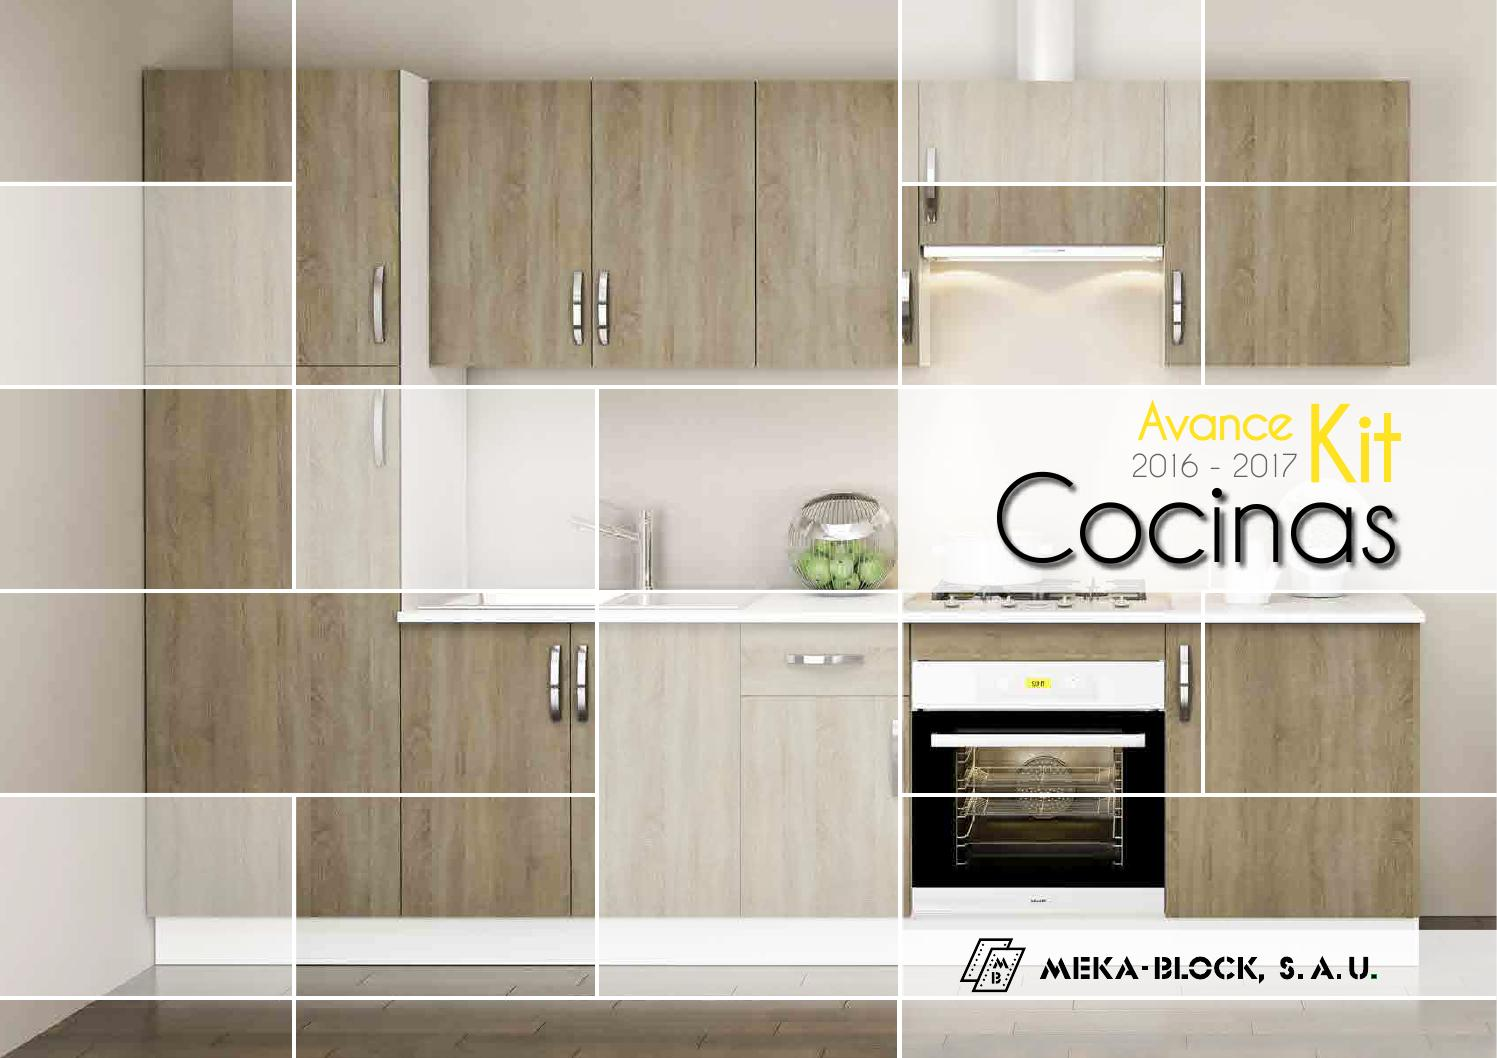 Avance catalogo cocinas 2016 2017 de meka block by meka for Catalogo cocinas